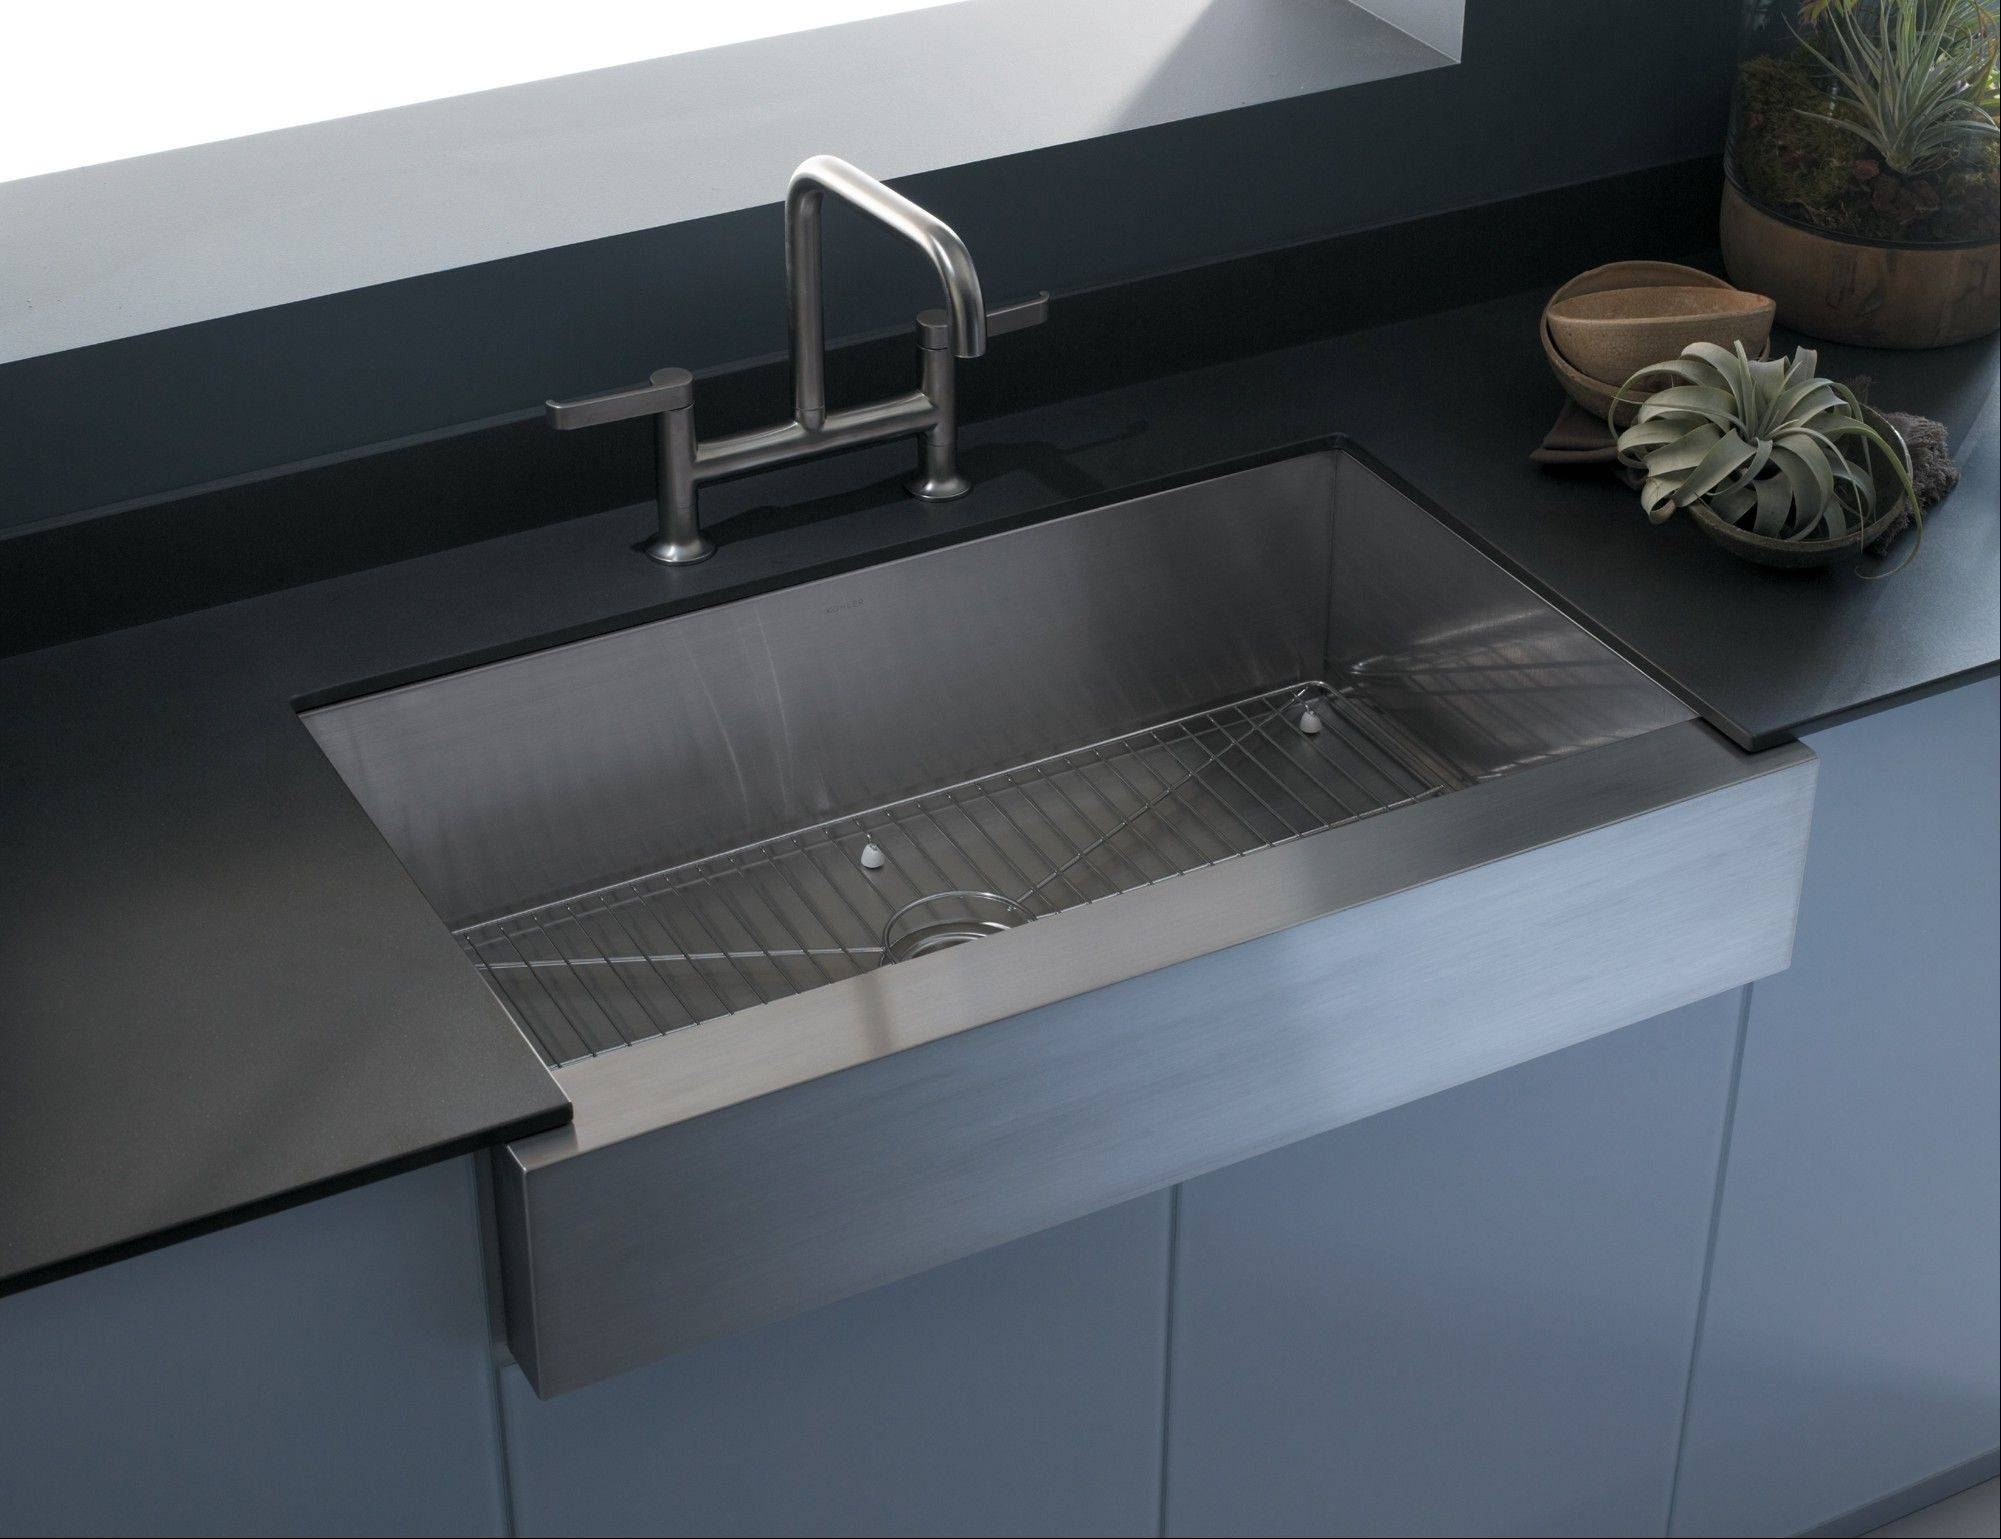 �Under mount� sinks are usually locked in under the counter, so in most cases the countertop would be removed along with the sink.